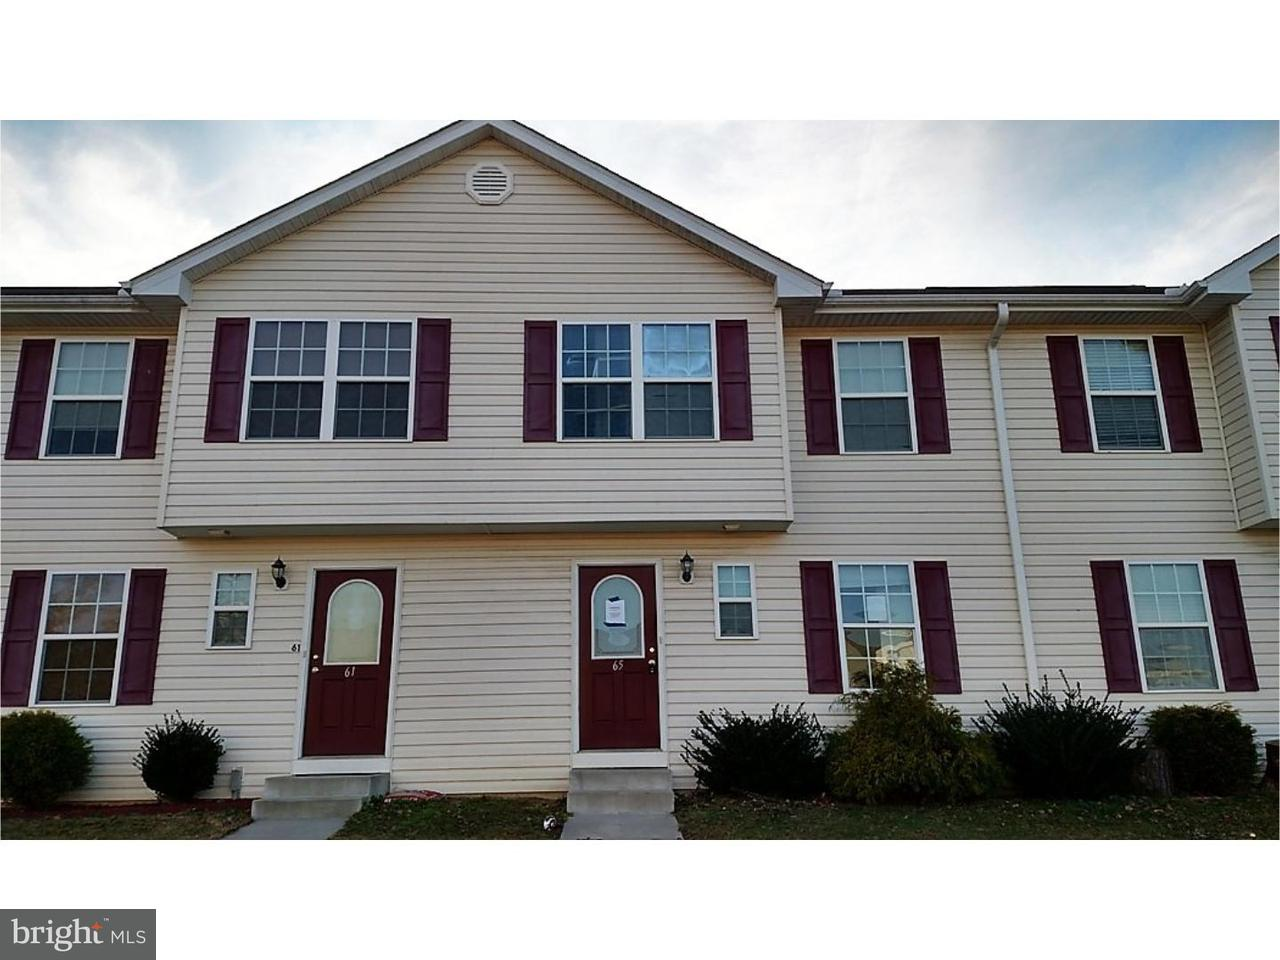 Townhouse for Sale at 65 MEDAL WAY Magnolia, Delaware 19962 United States